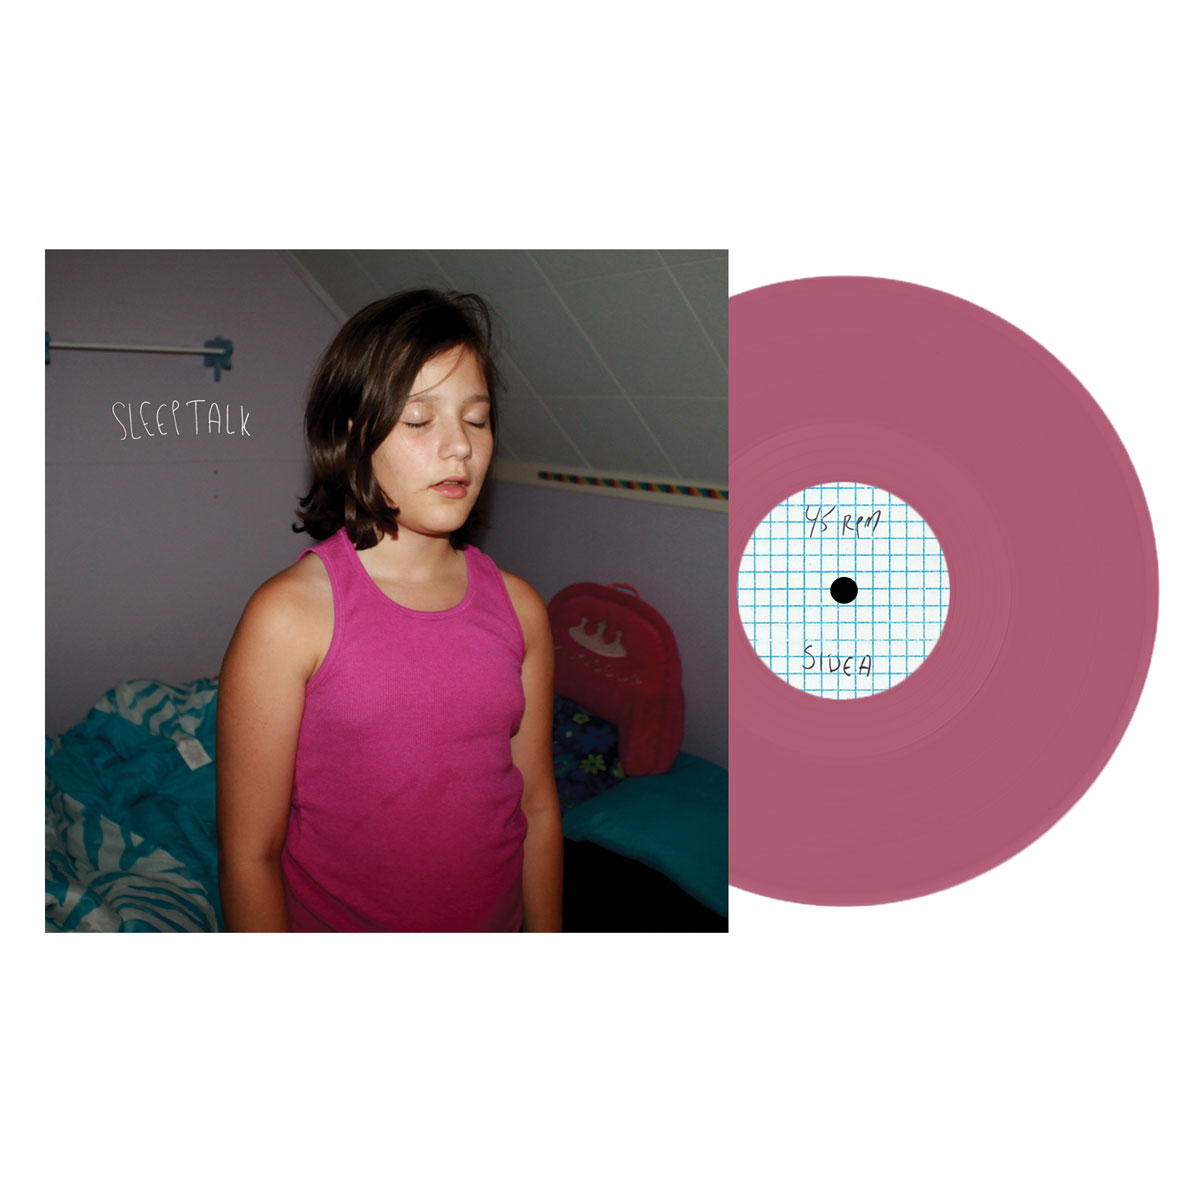 Father/Daughter Records - Diet Cig - Sleep Talk / Dinner Date